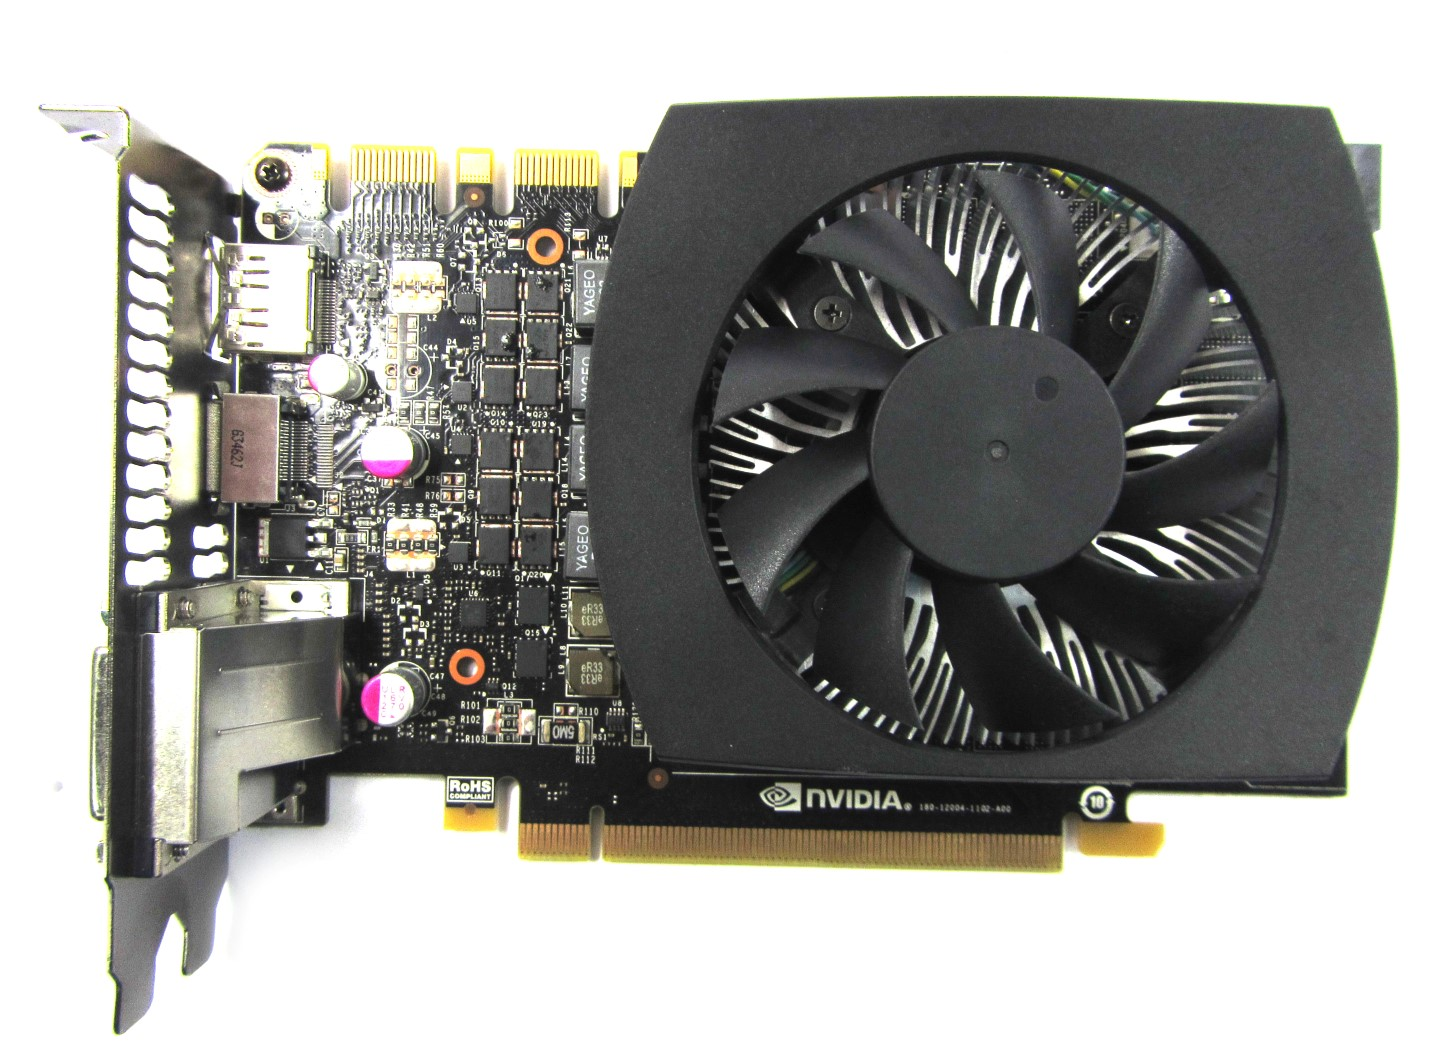 sus geforce gtx 760 video card Gpuboss recommends the nvidia geforce gtx 950  benchmarks real world tests of radeon rx 460 vs geforce gtx 950 bitcoin mining data courtesy compubench radeon.